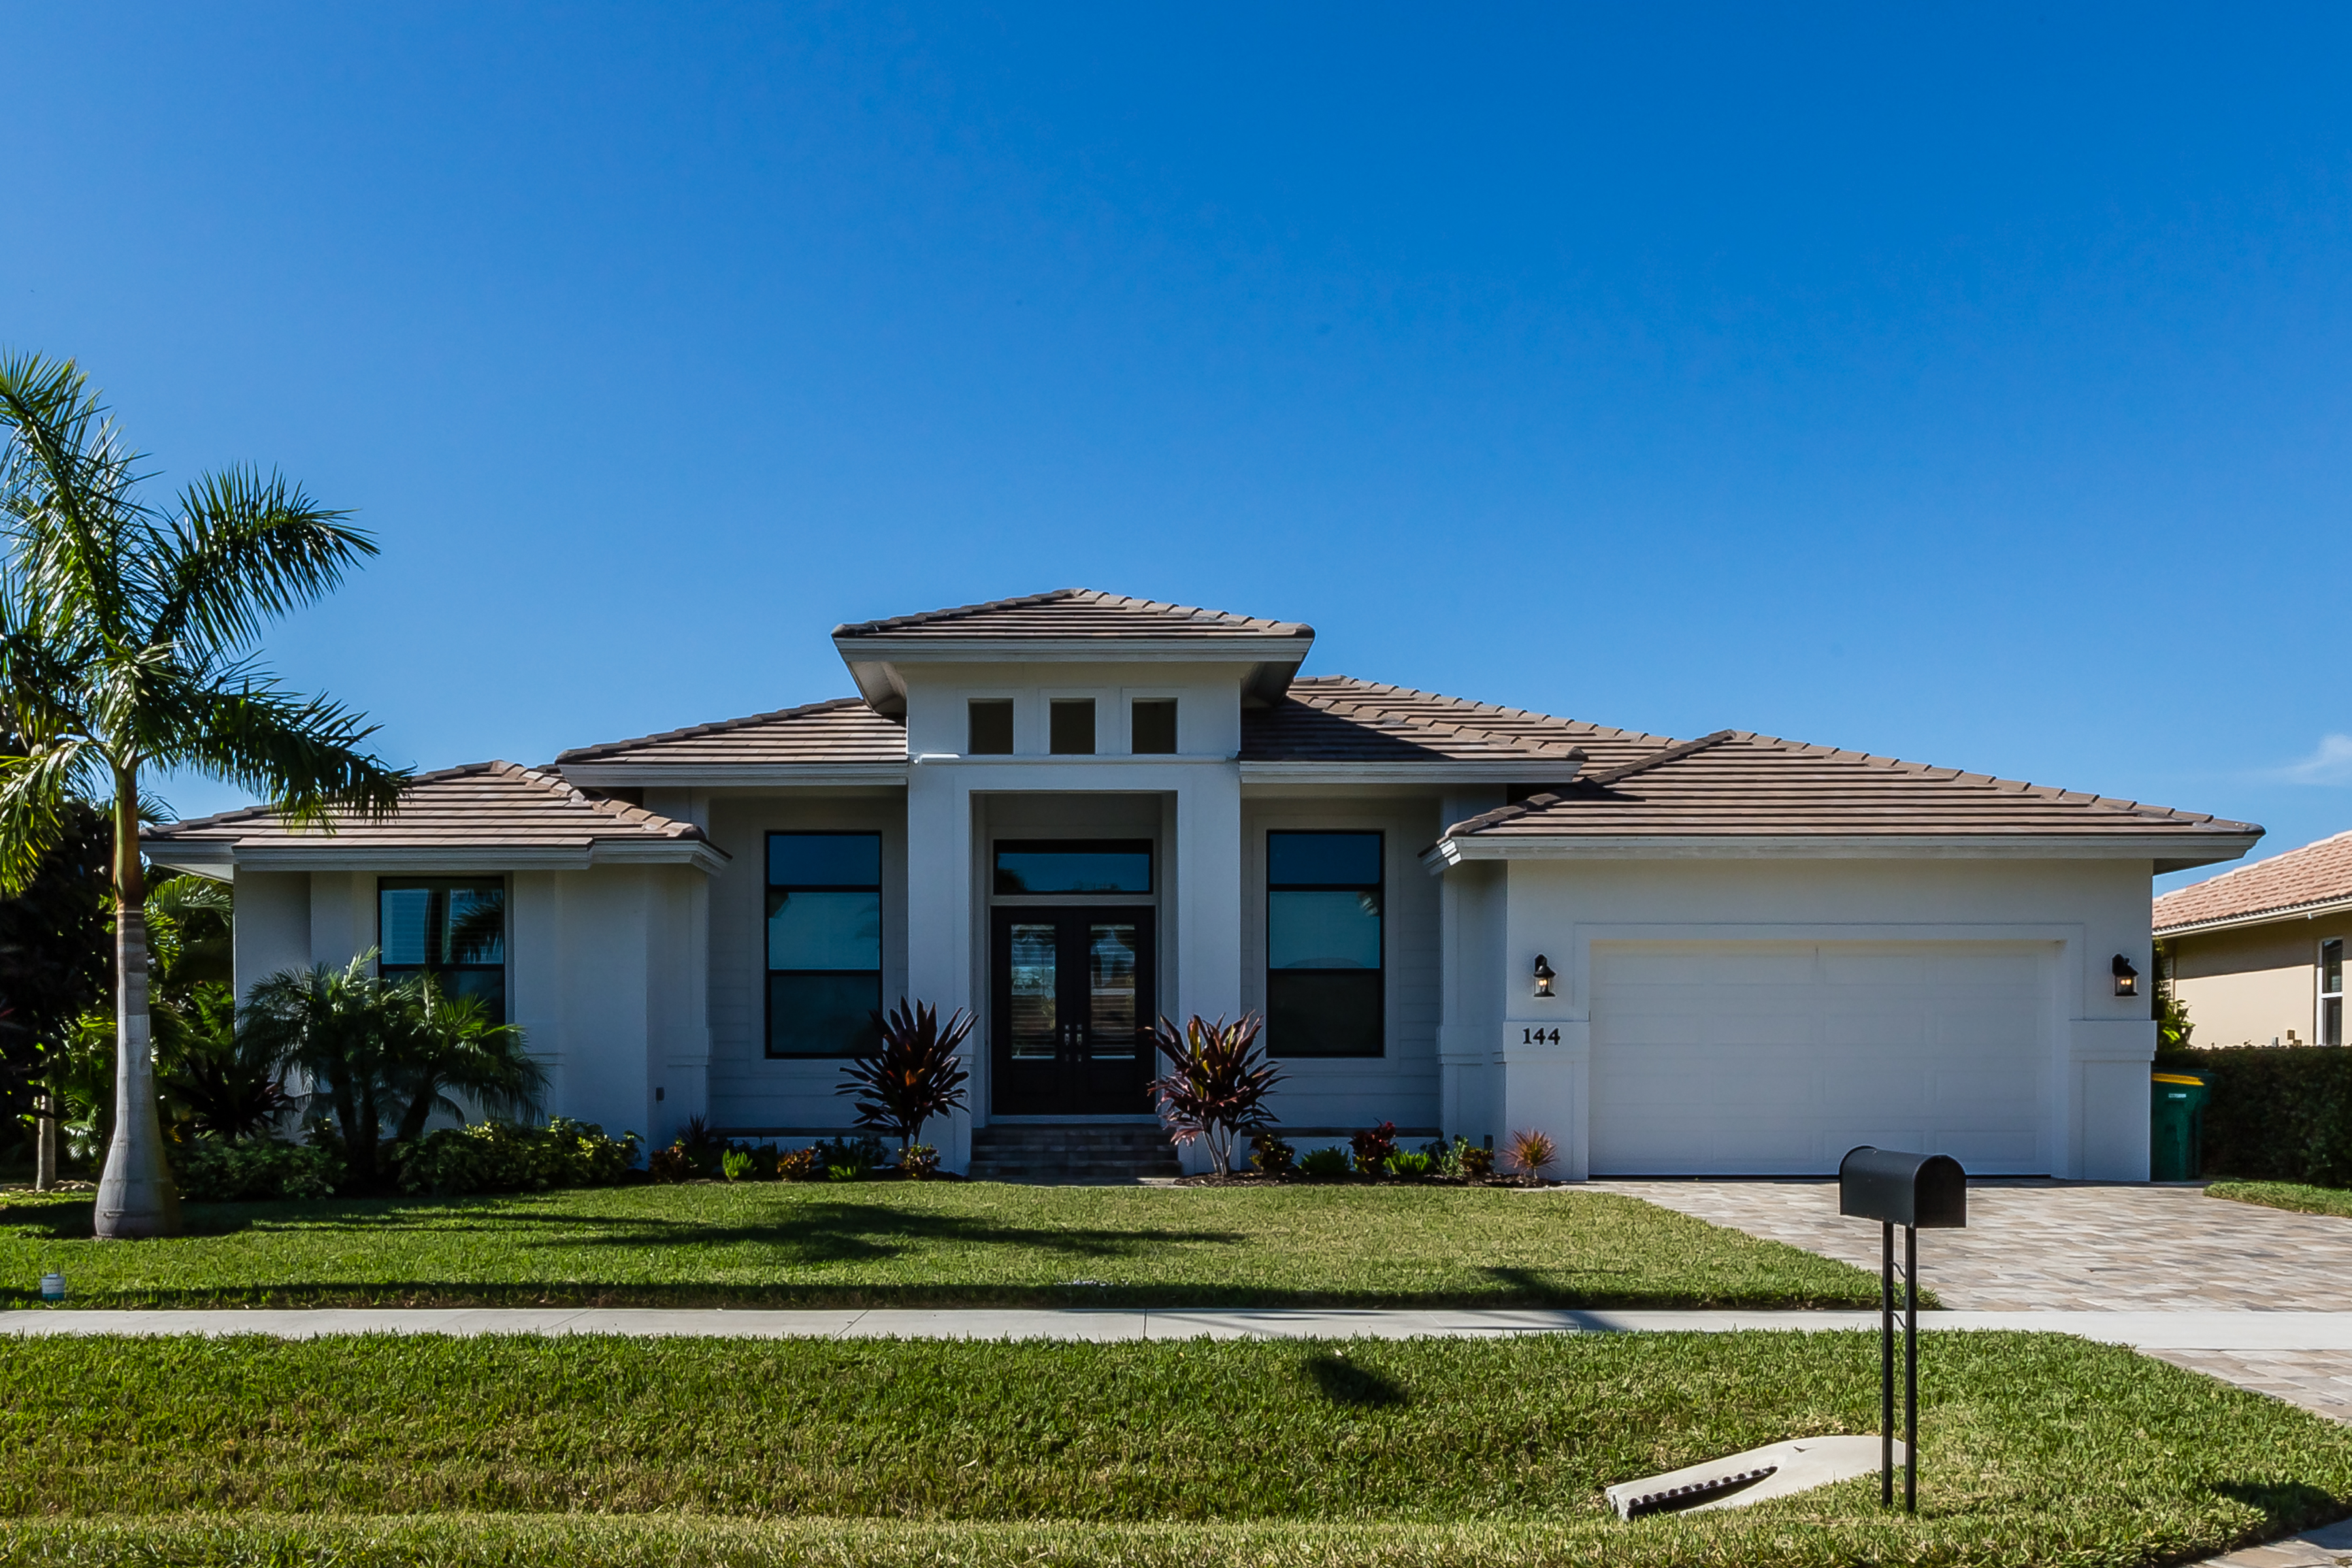 Marco Island house for rent with 3 bedrooms large pool and close to the beach